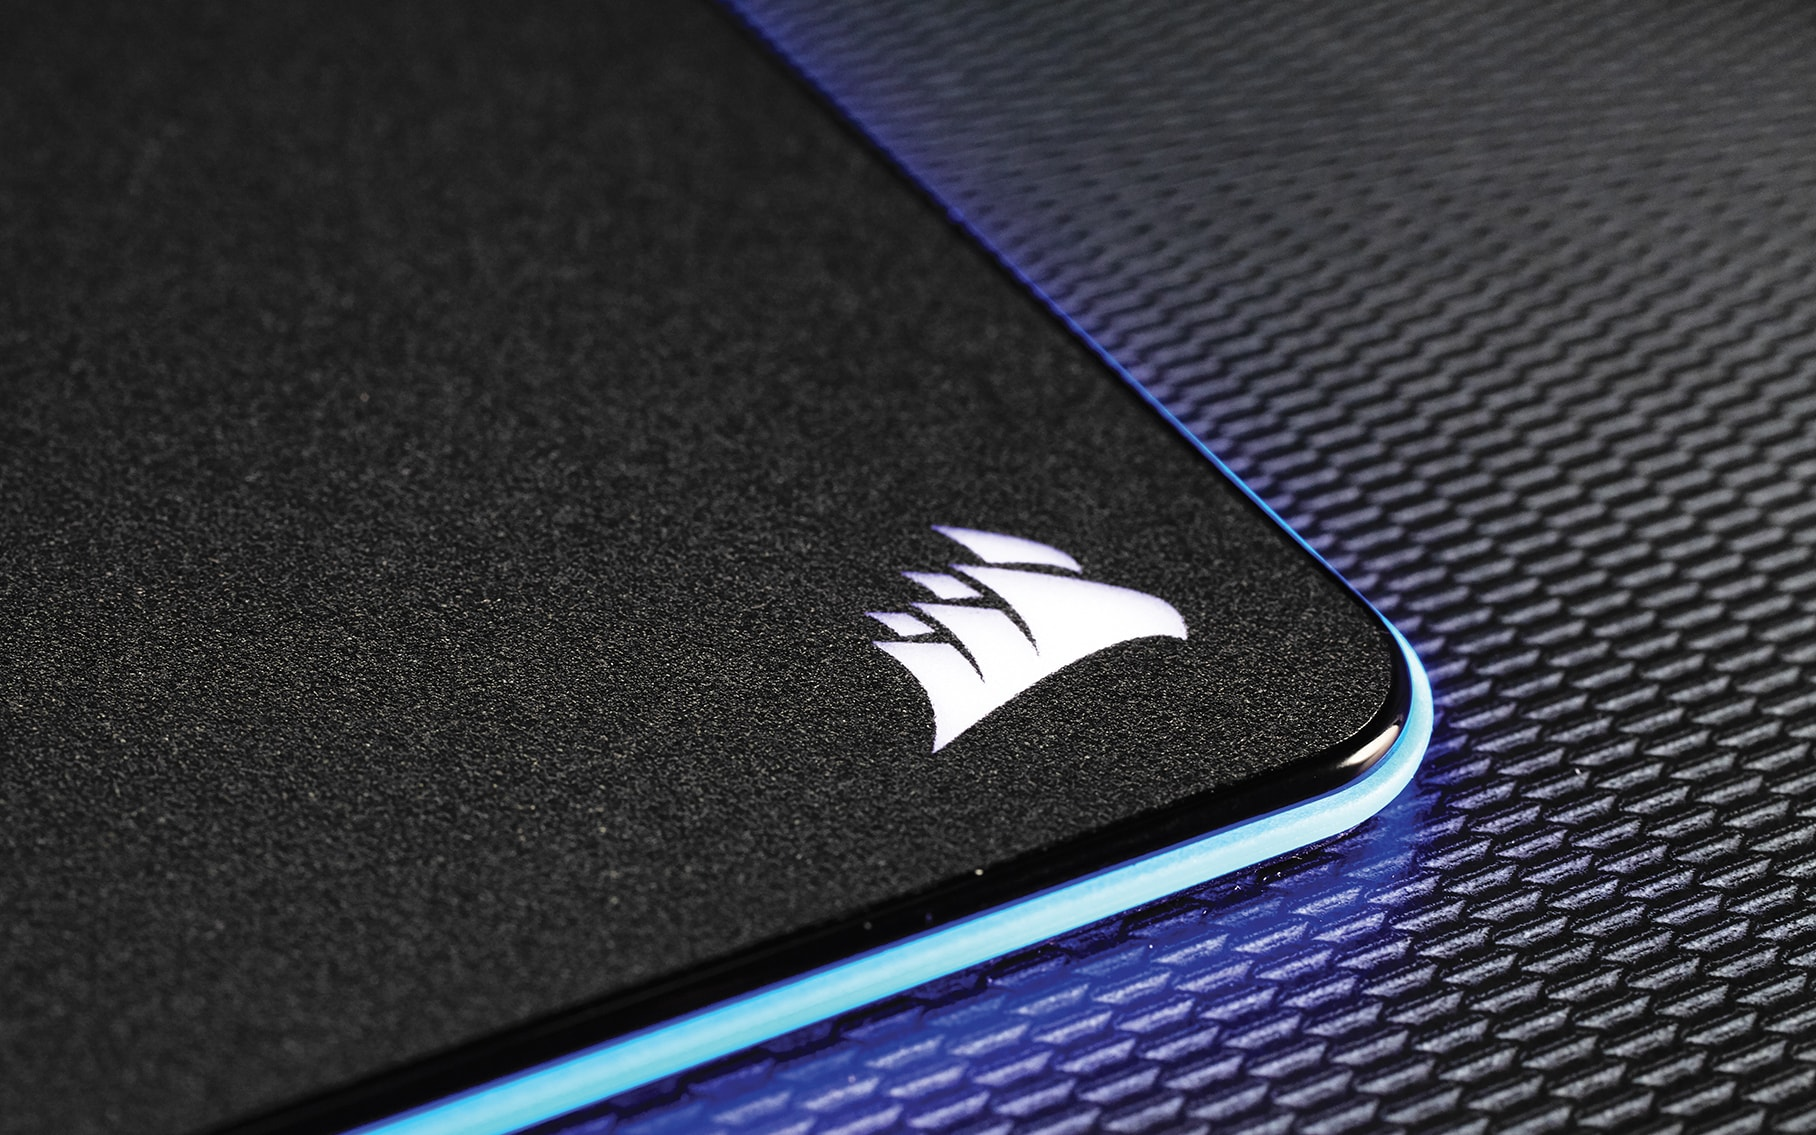 Mm800 Rgb Polaris Gaming Mouse Pad Light Up The Playing